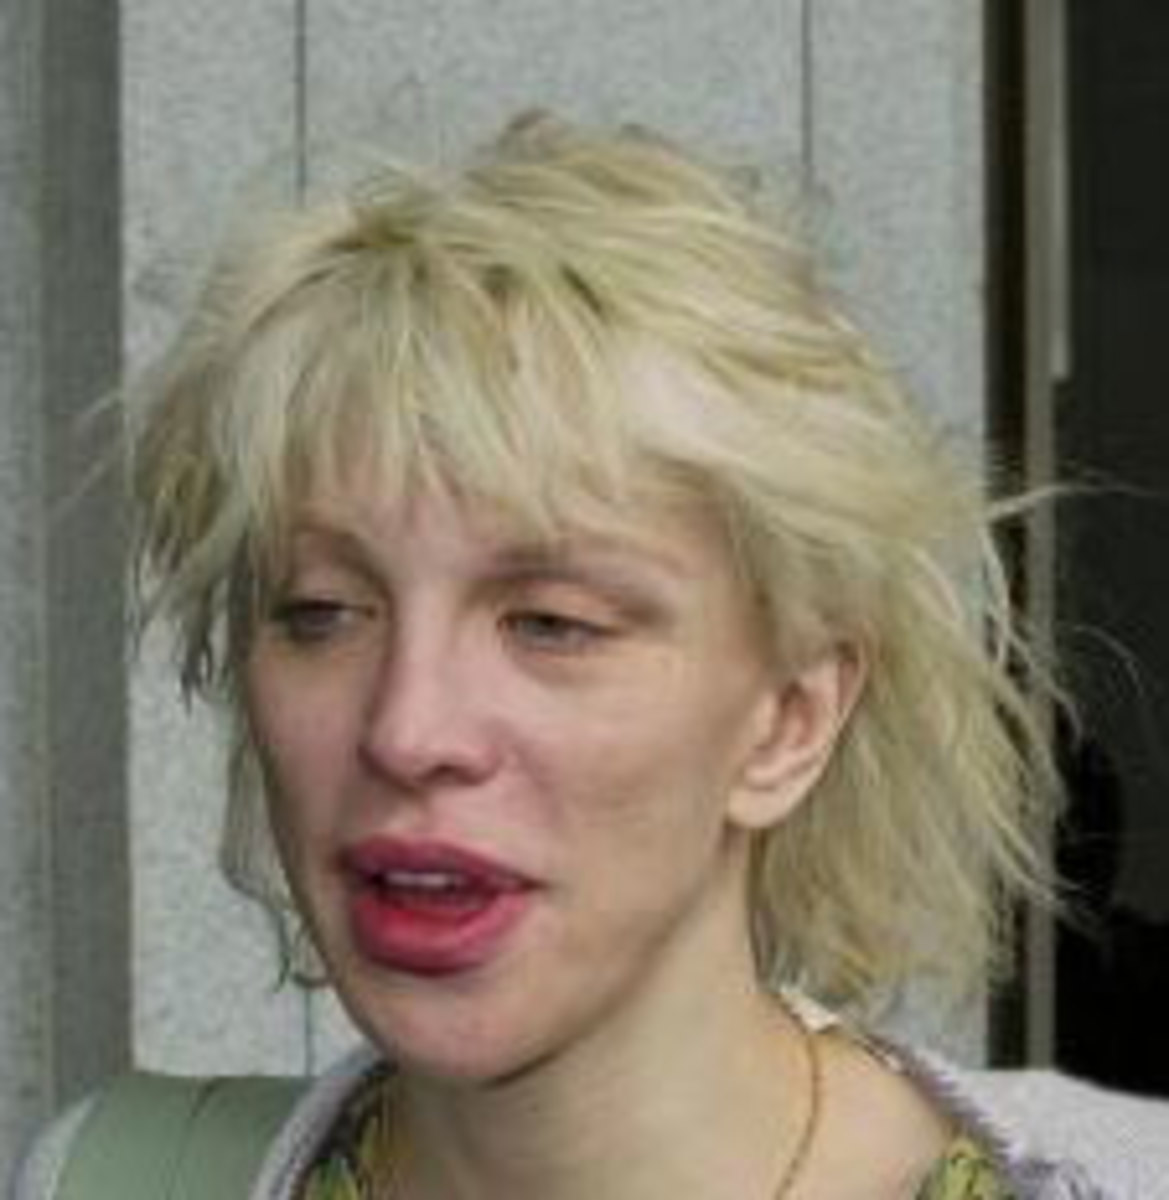 Courtney Love of Hole